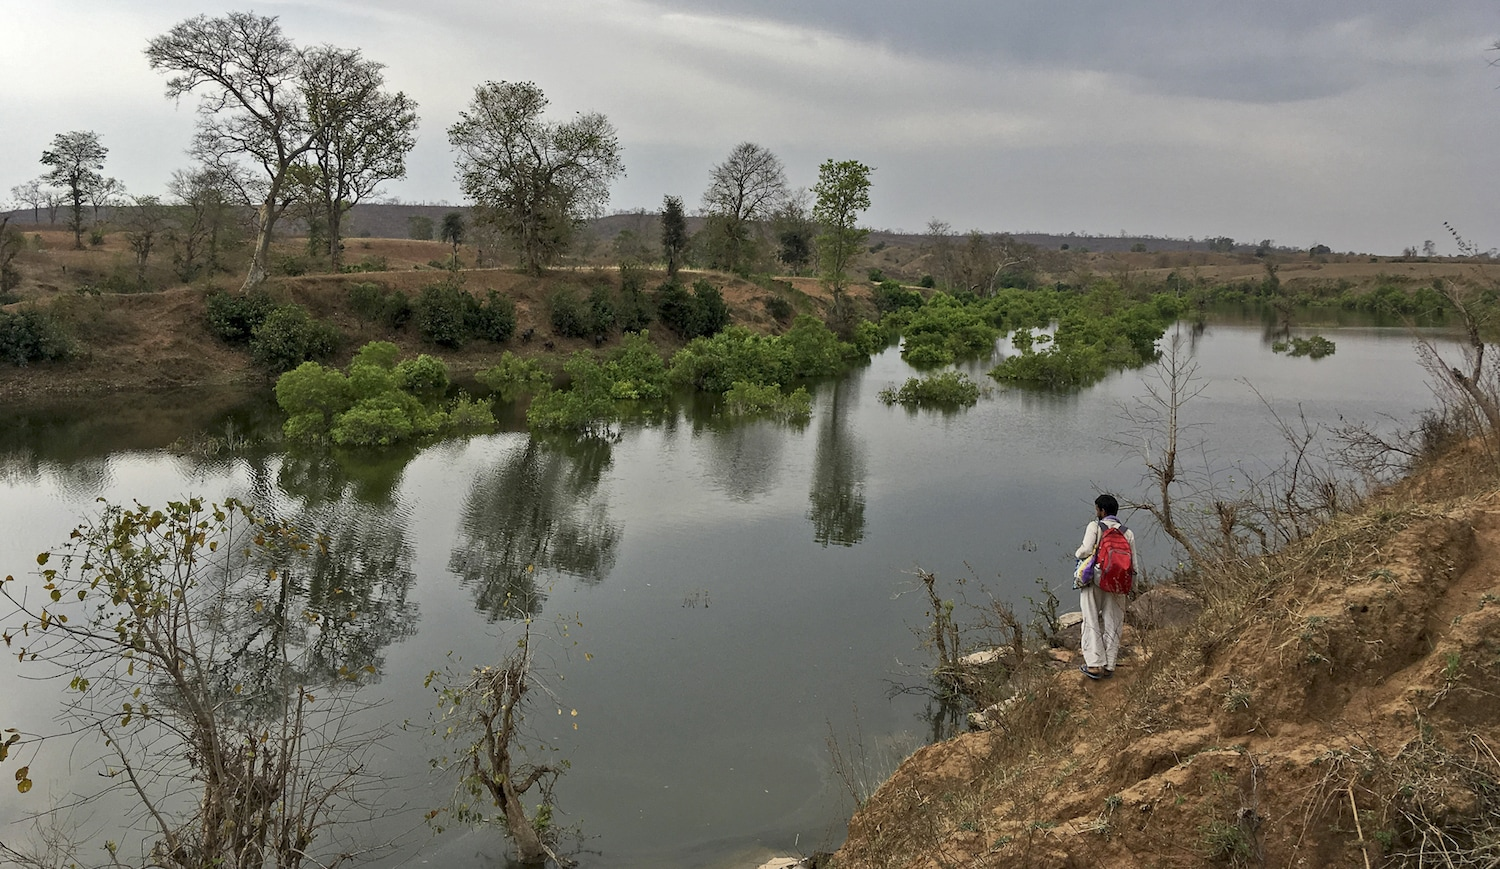 Bhim Rawat from SANDRP (South Asia Network on Dams, Rivers, and People) observing a pool created in the river by an irrigation project. On paper, this irrigation project has no negative social or environmental impact. Reality bears no semblance to these documents.Photo: Siddharth Agarwal